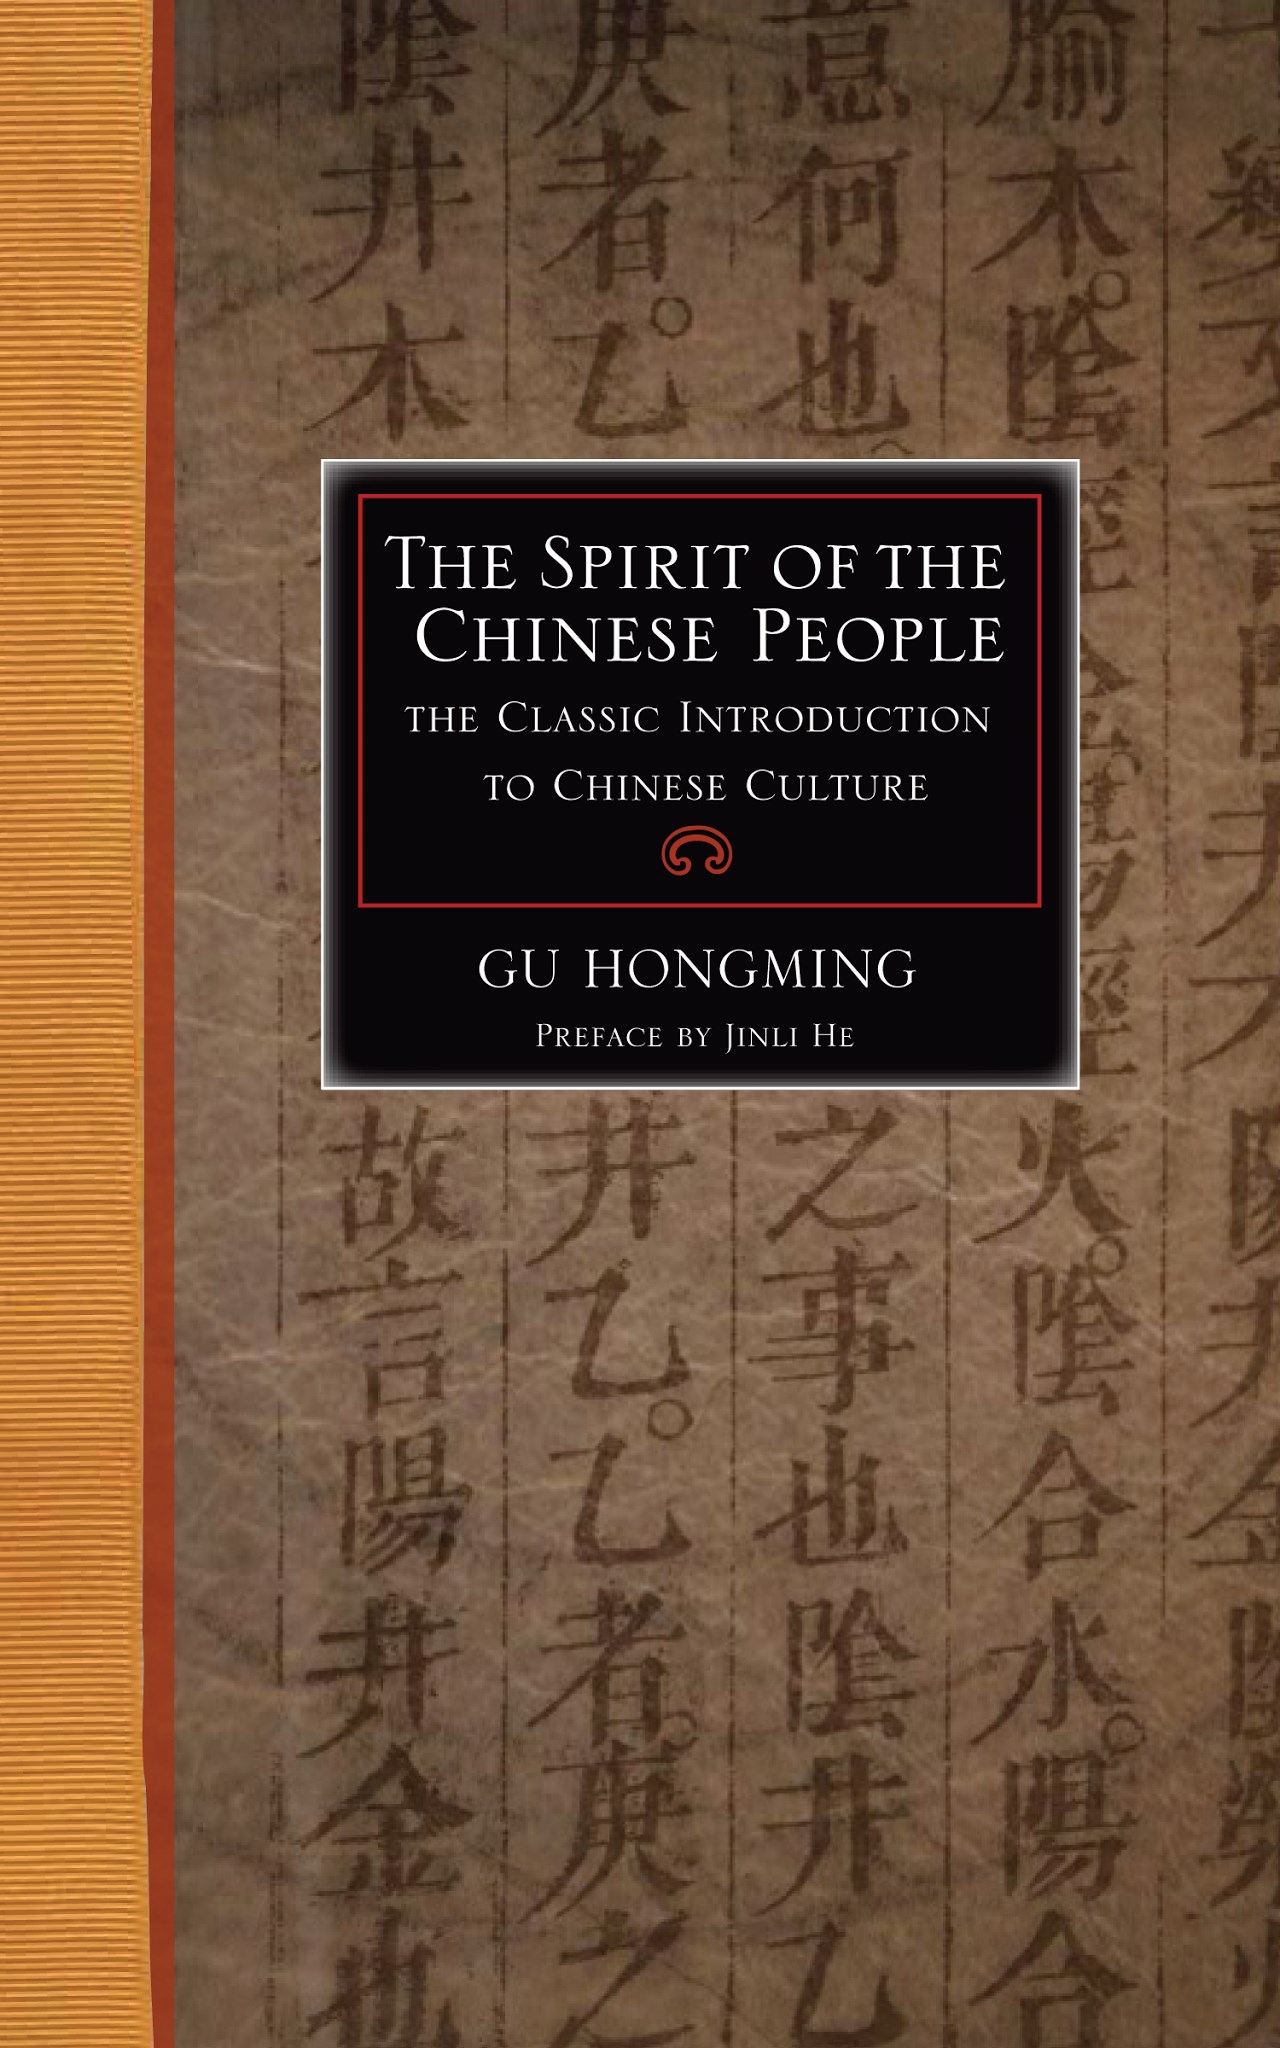 The Spirit of the Chinese People: The Classic Introduction to Chinese Culture